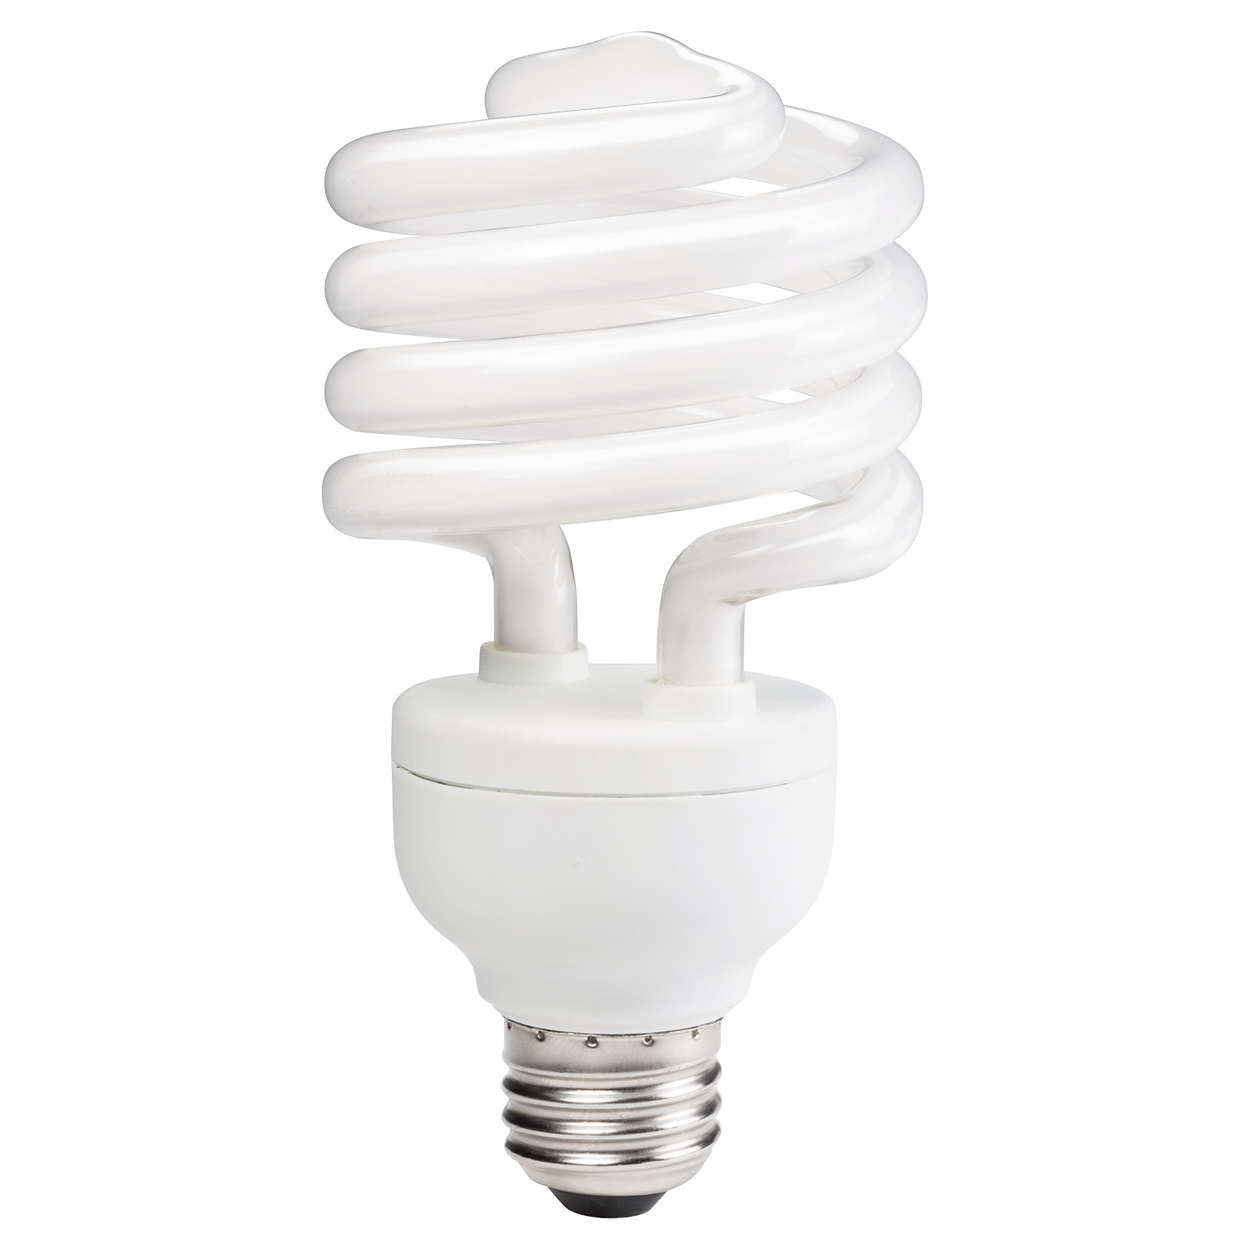 Lasts up to 13 times longer than incandescents